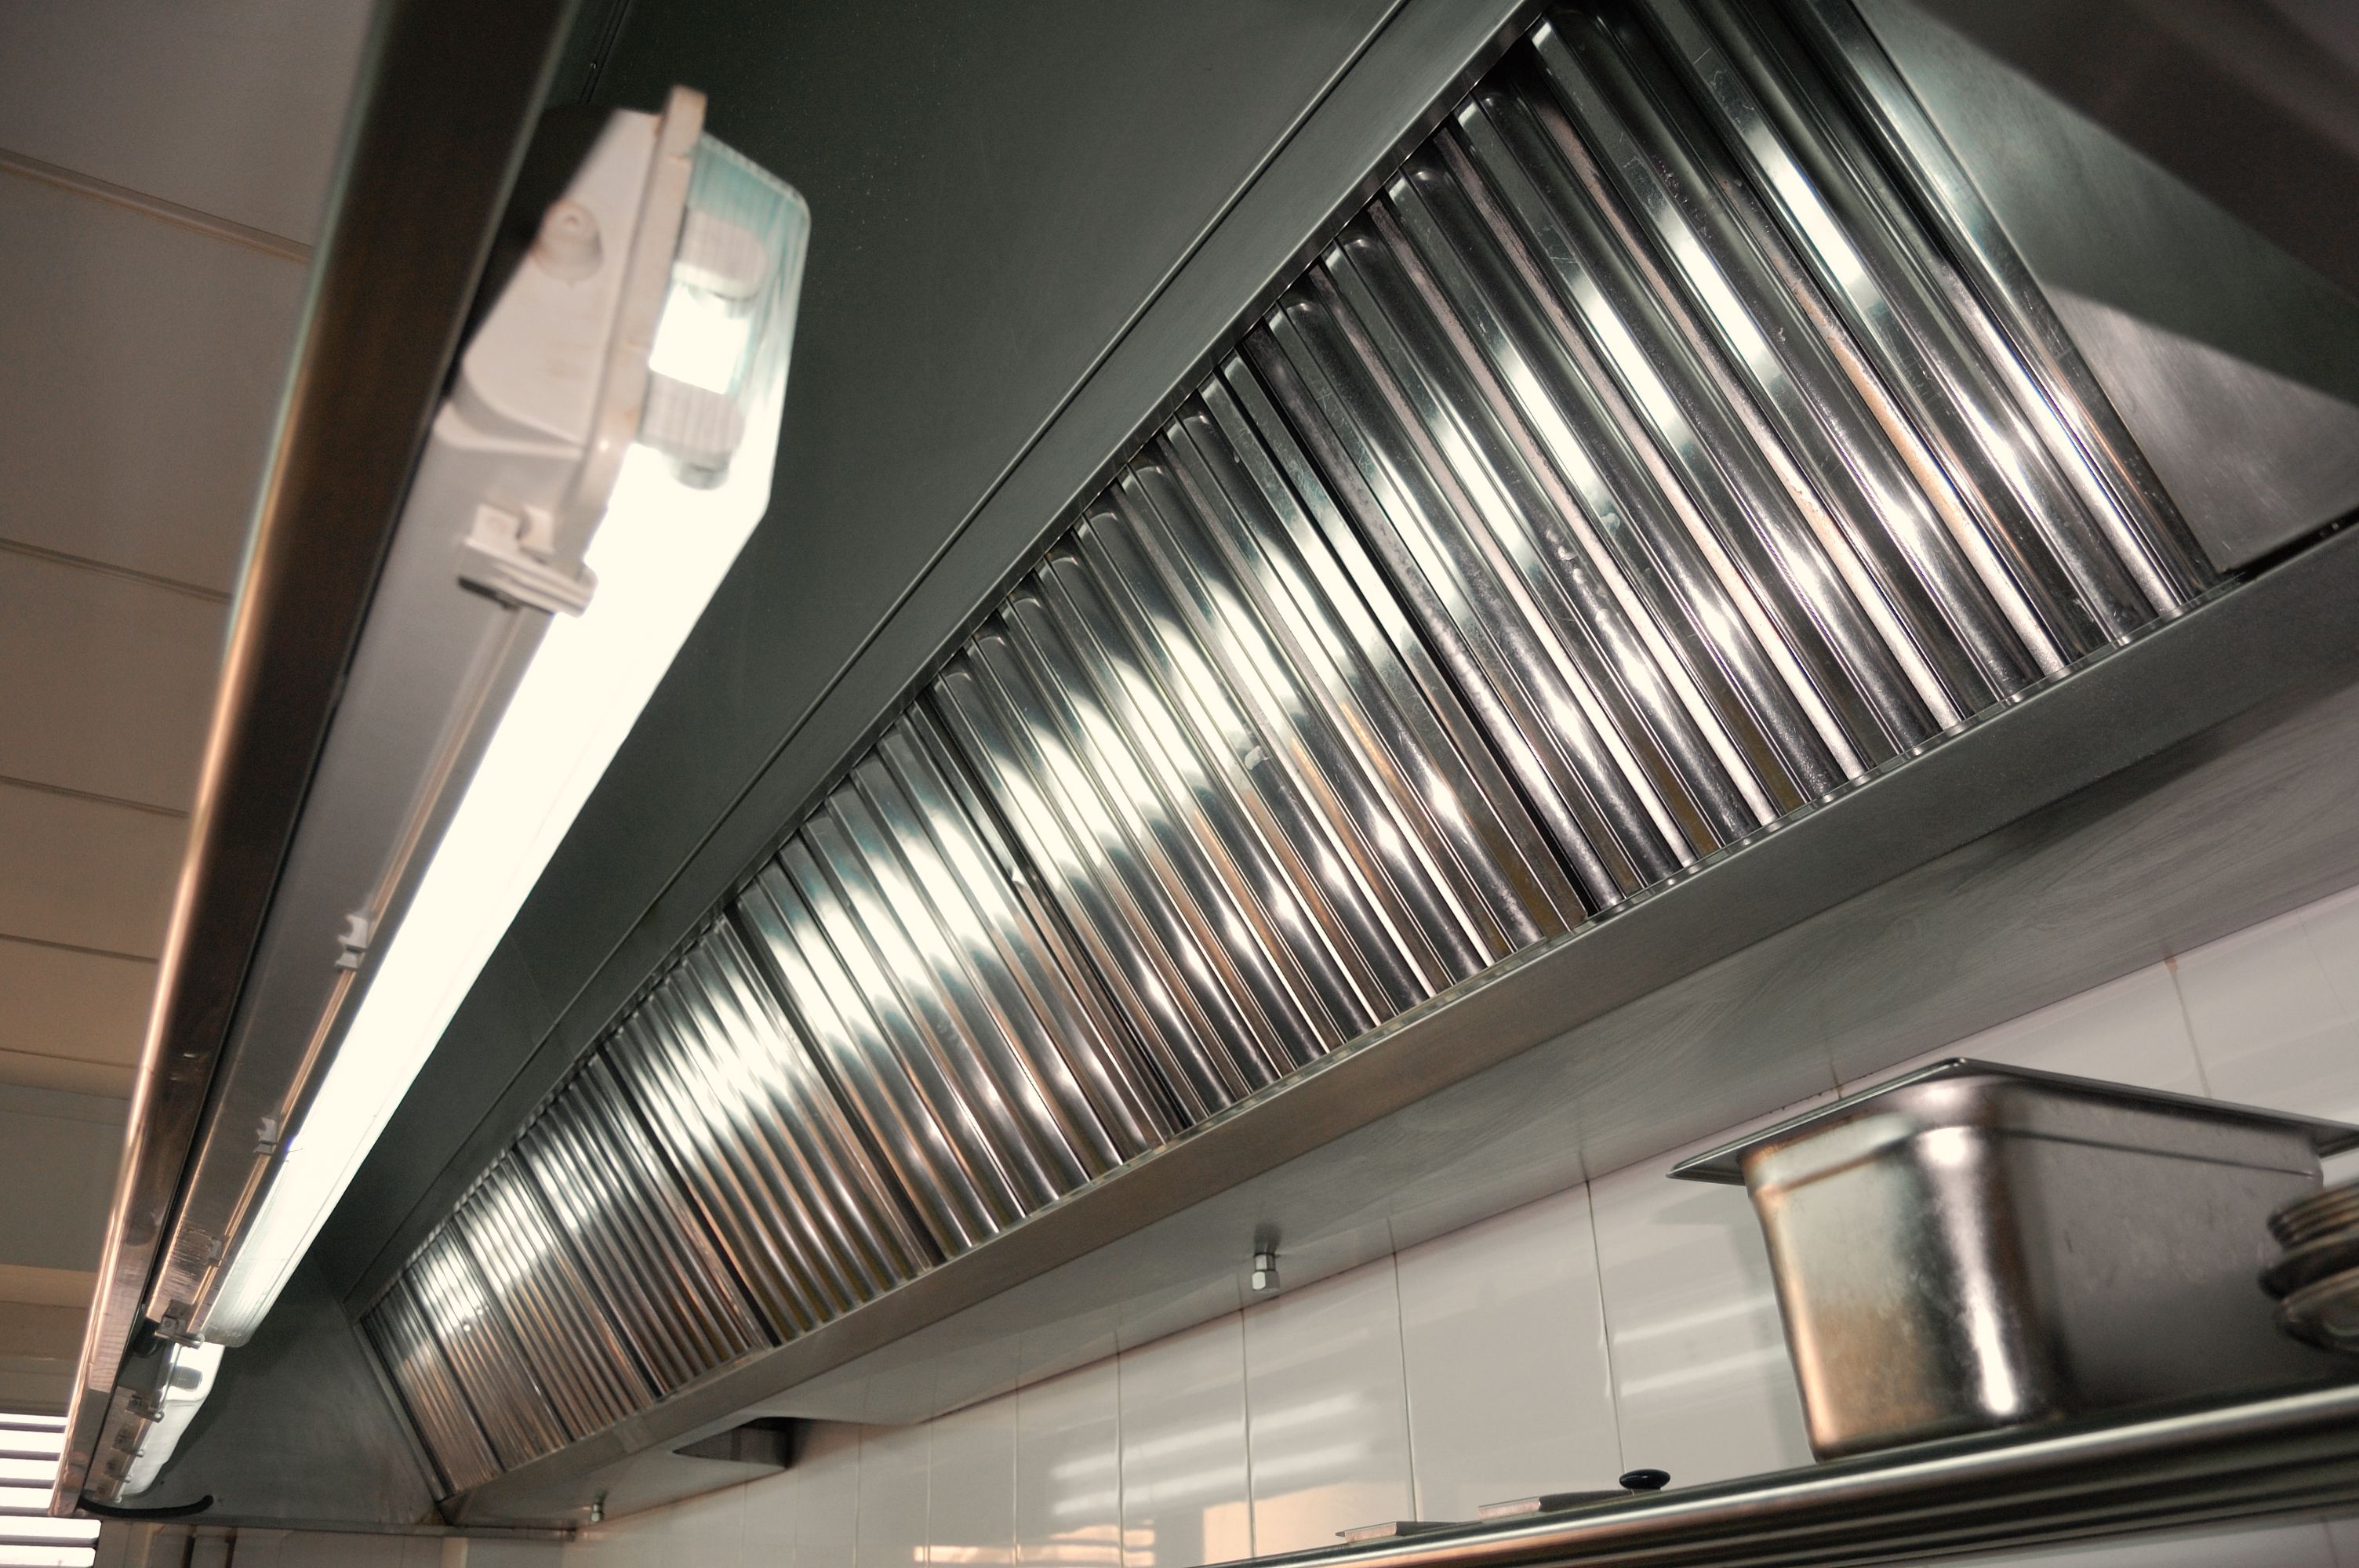 Commercial Kitchen Range Hoods The Importance of Tempered